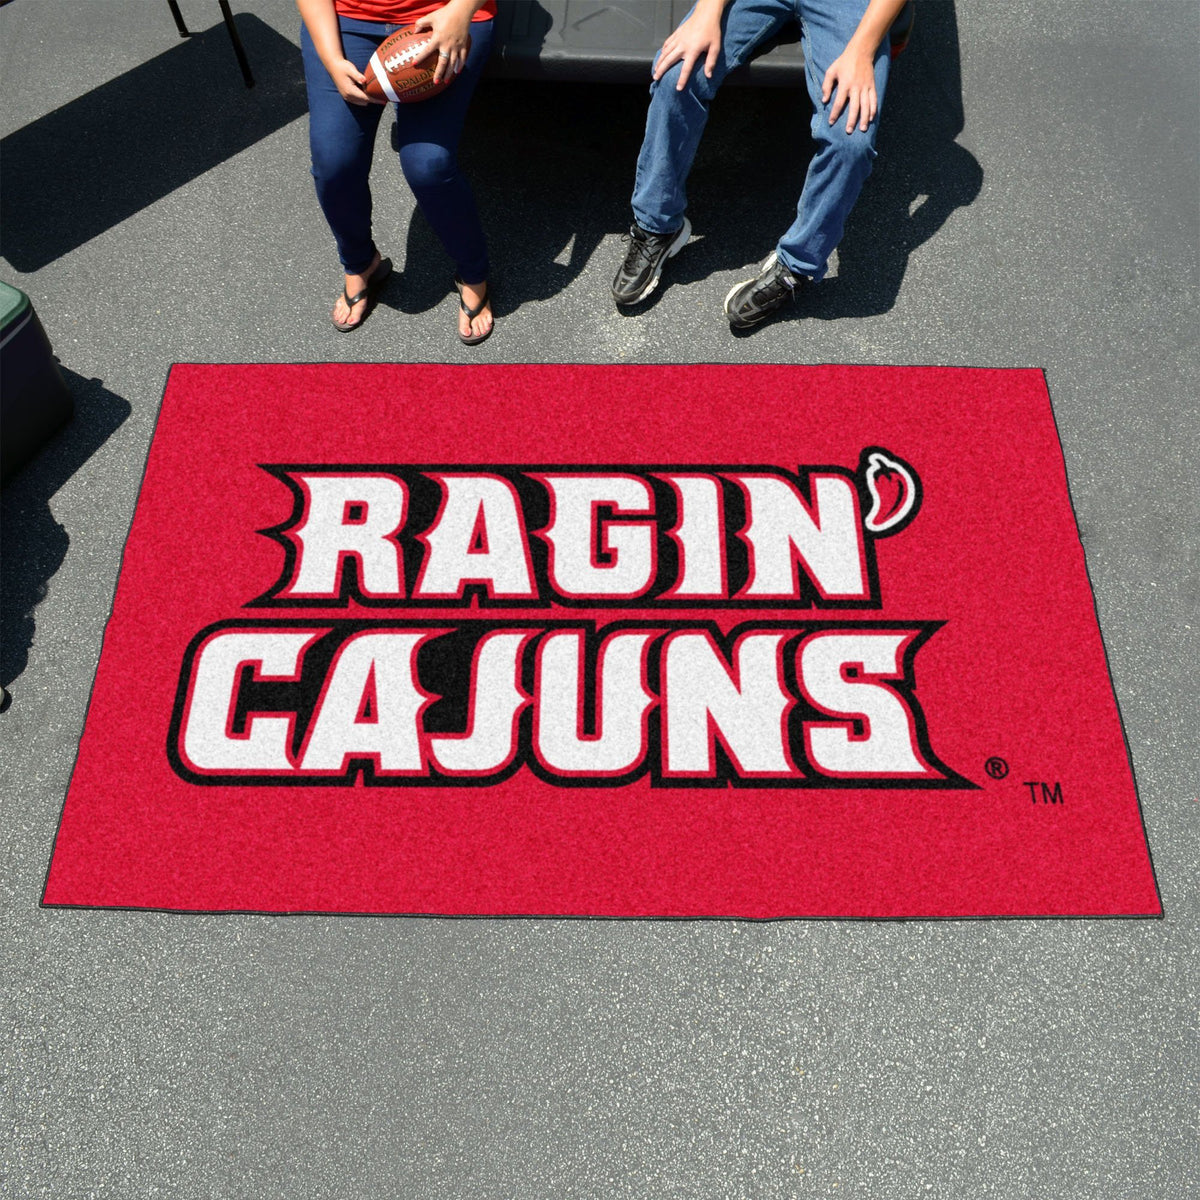 Collegiate - Ulti-Mat: A - L Collegiate Mats, Rectangular Mats, Ulti-Mat, Collegiate, Home Fan Mats Louisiana-Lafayette